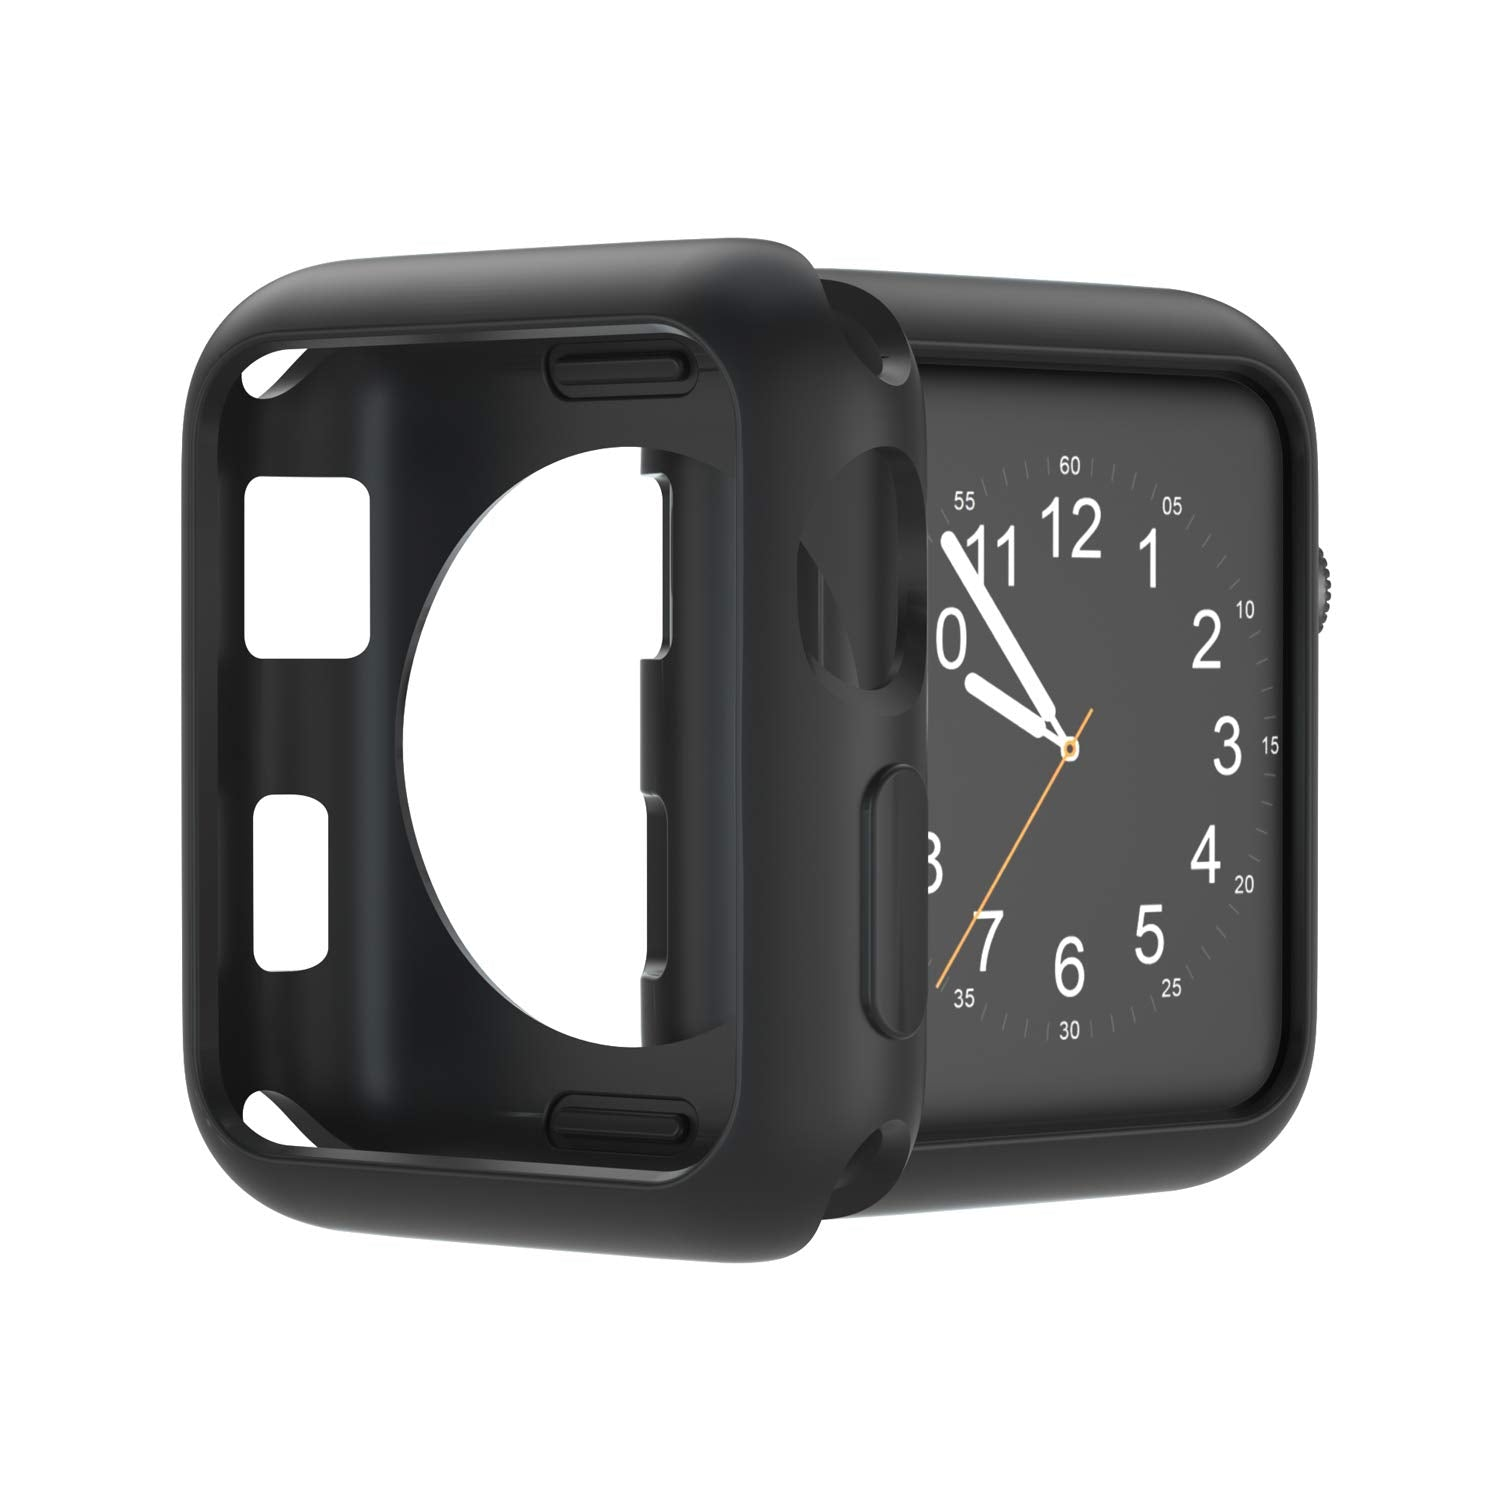 U191U Compatible with Apple Watch Case 38mm 42mm 40mm 44mm, Soft TPU Shockproof and Shatter-Resistant Protective Bumper Cover iwatch Series 5 4 3 2 Case (Black, 38mm Series 2/3)